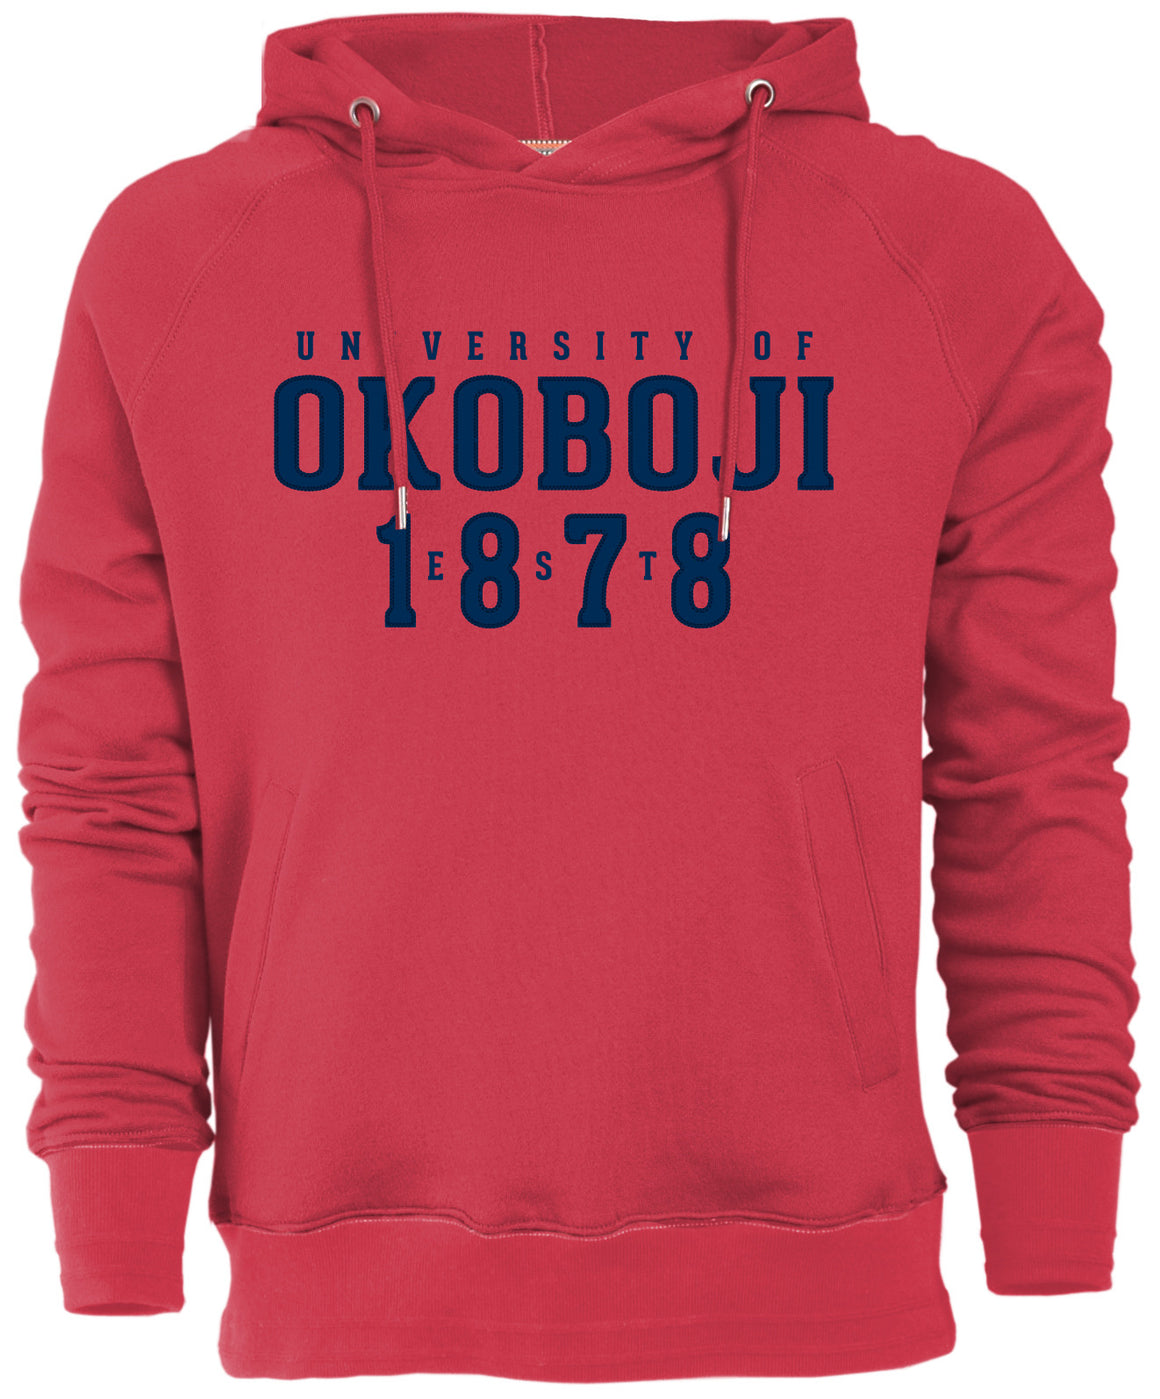 University of Okoboji 1878 Hero Hood